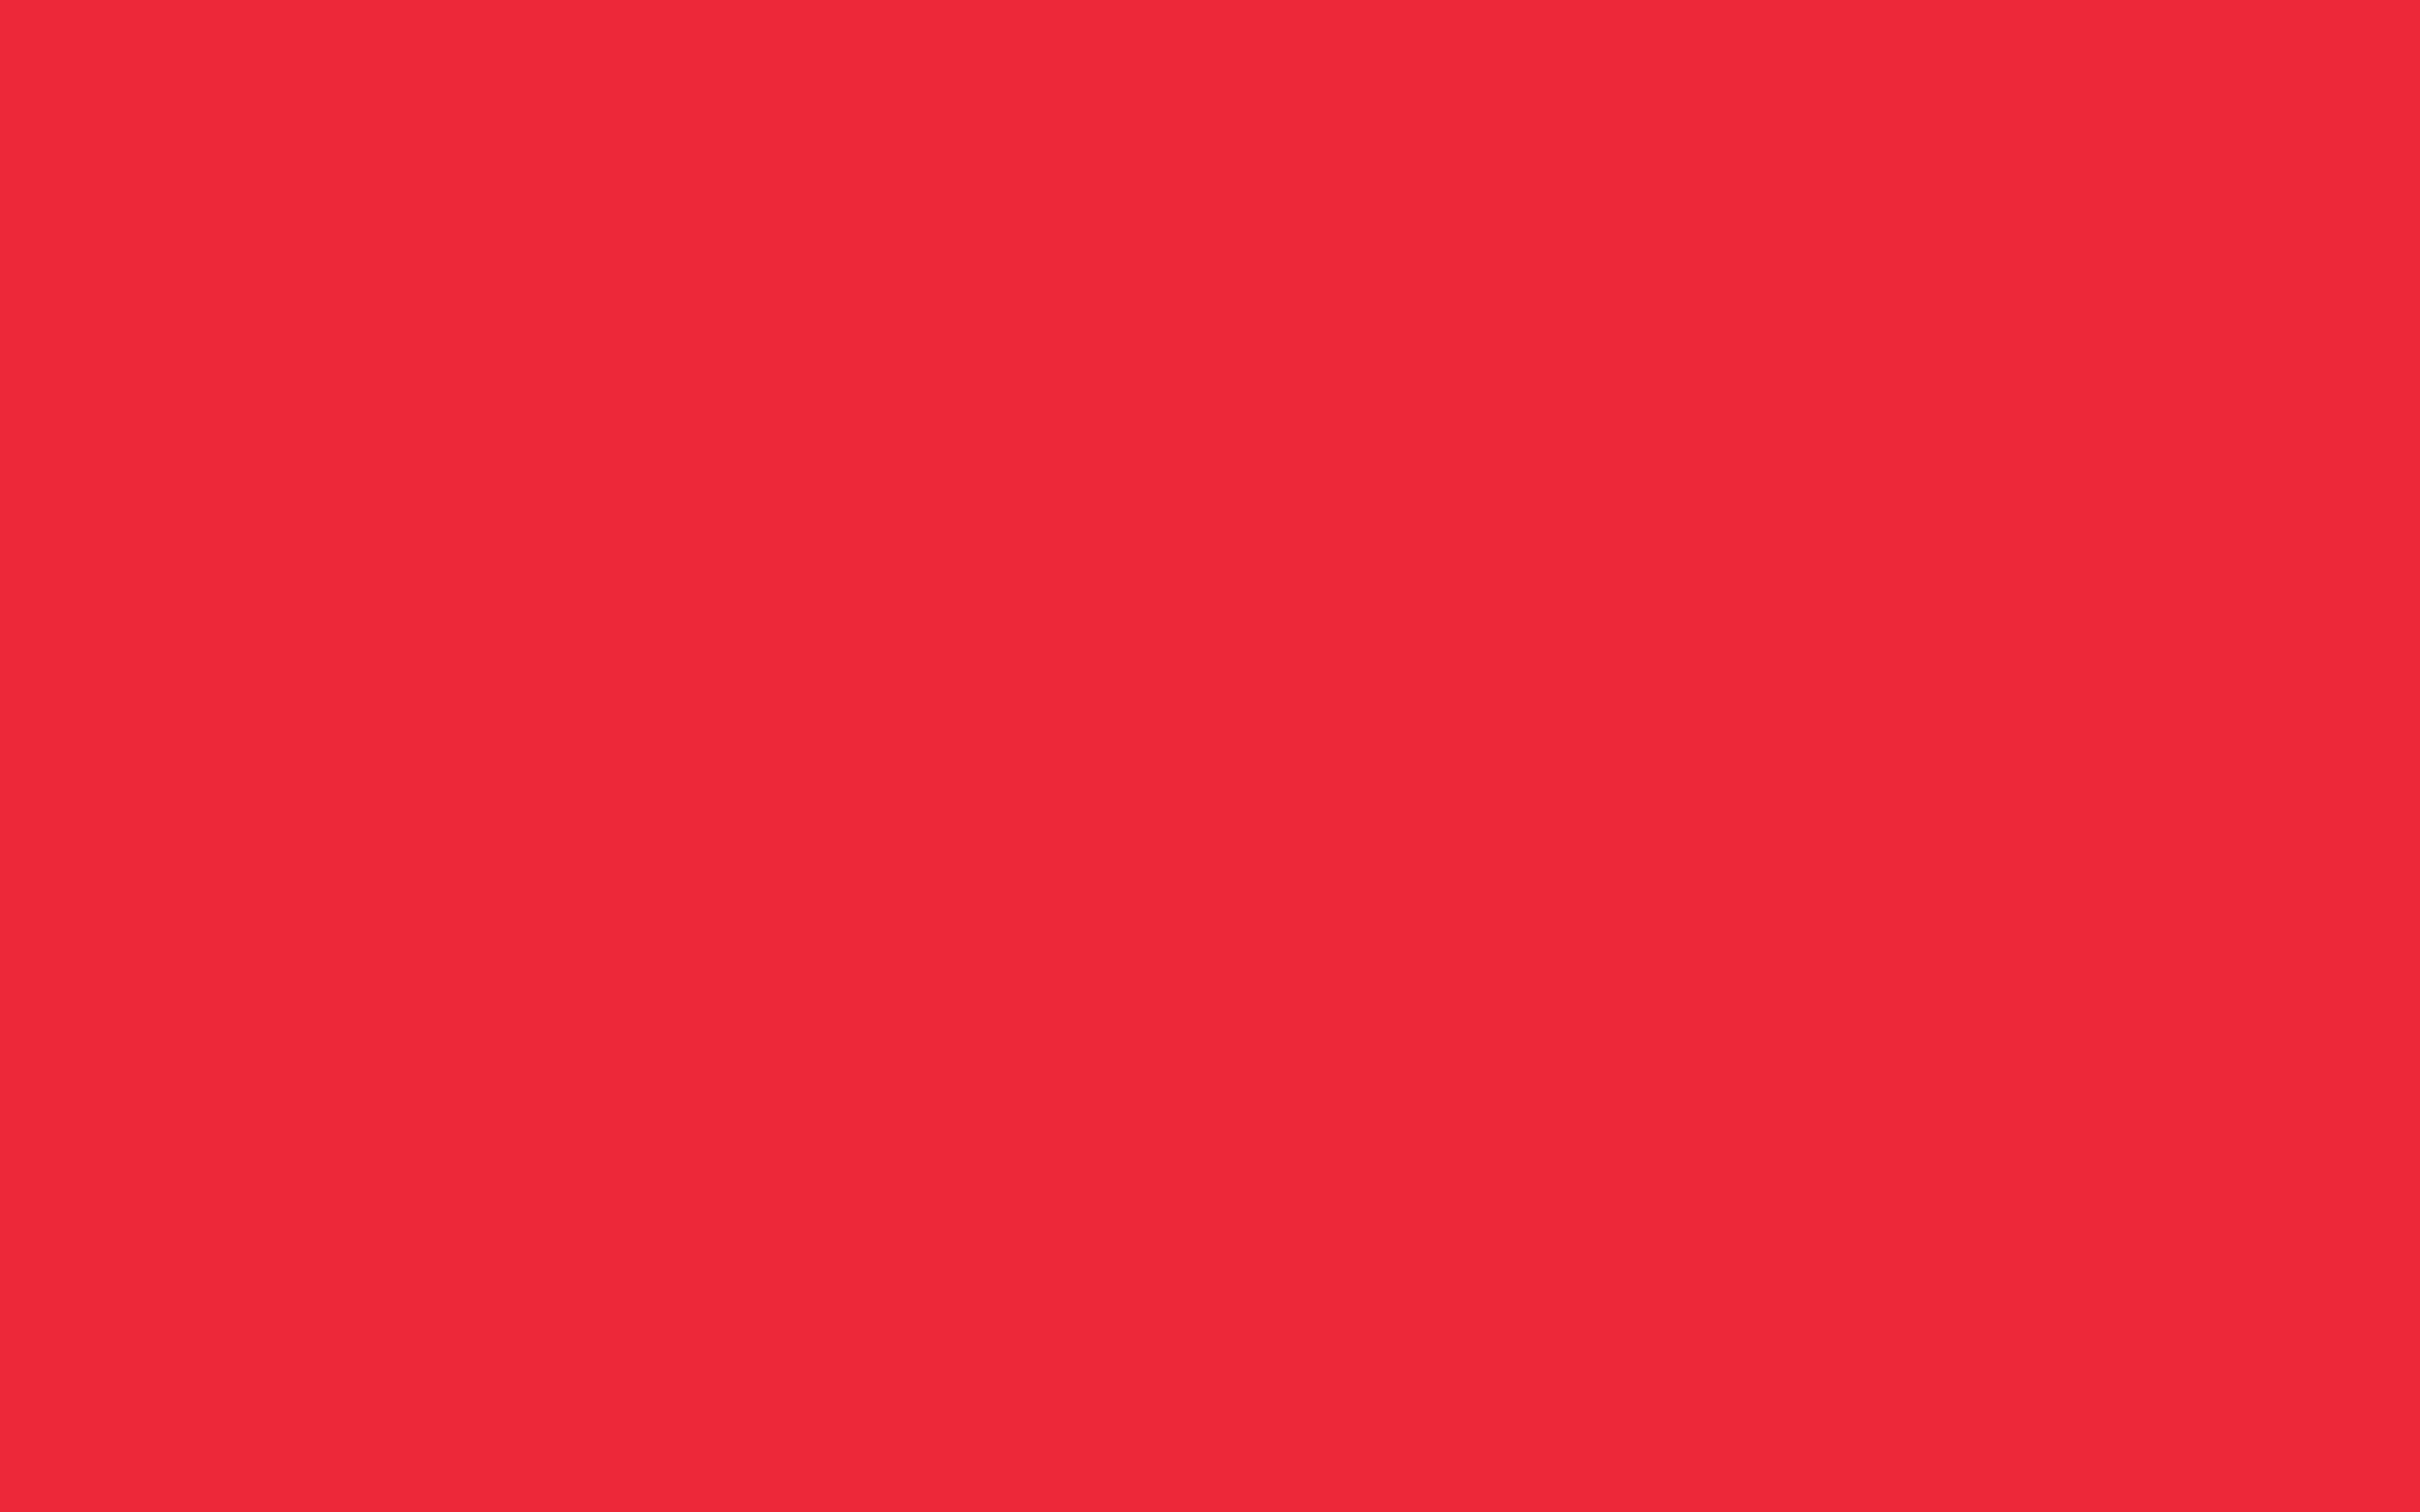 2560x1600 Red Pantone Solid Color Background